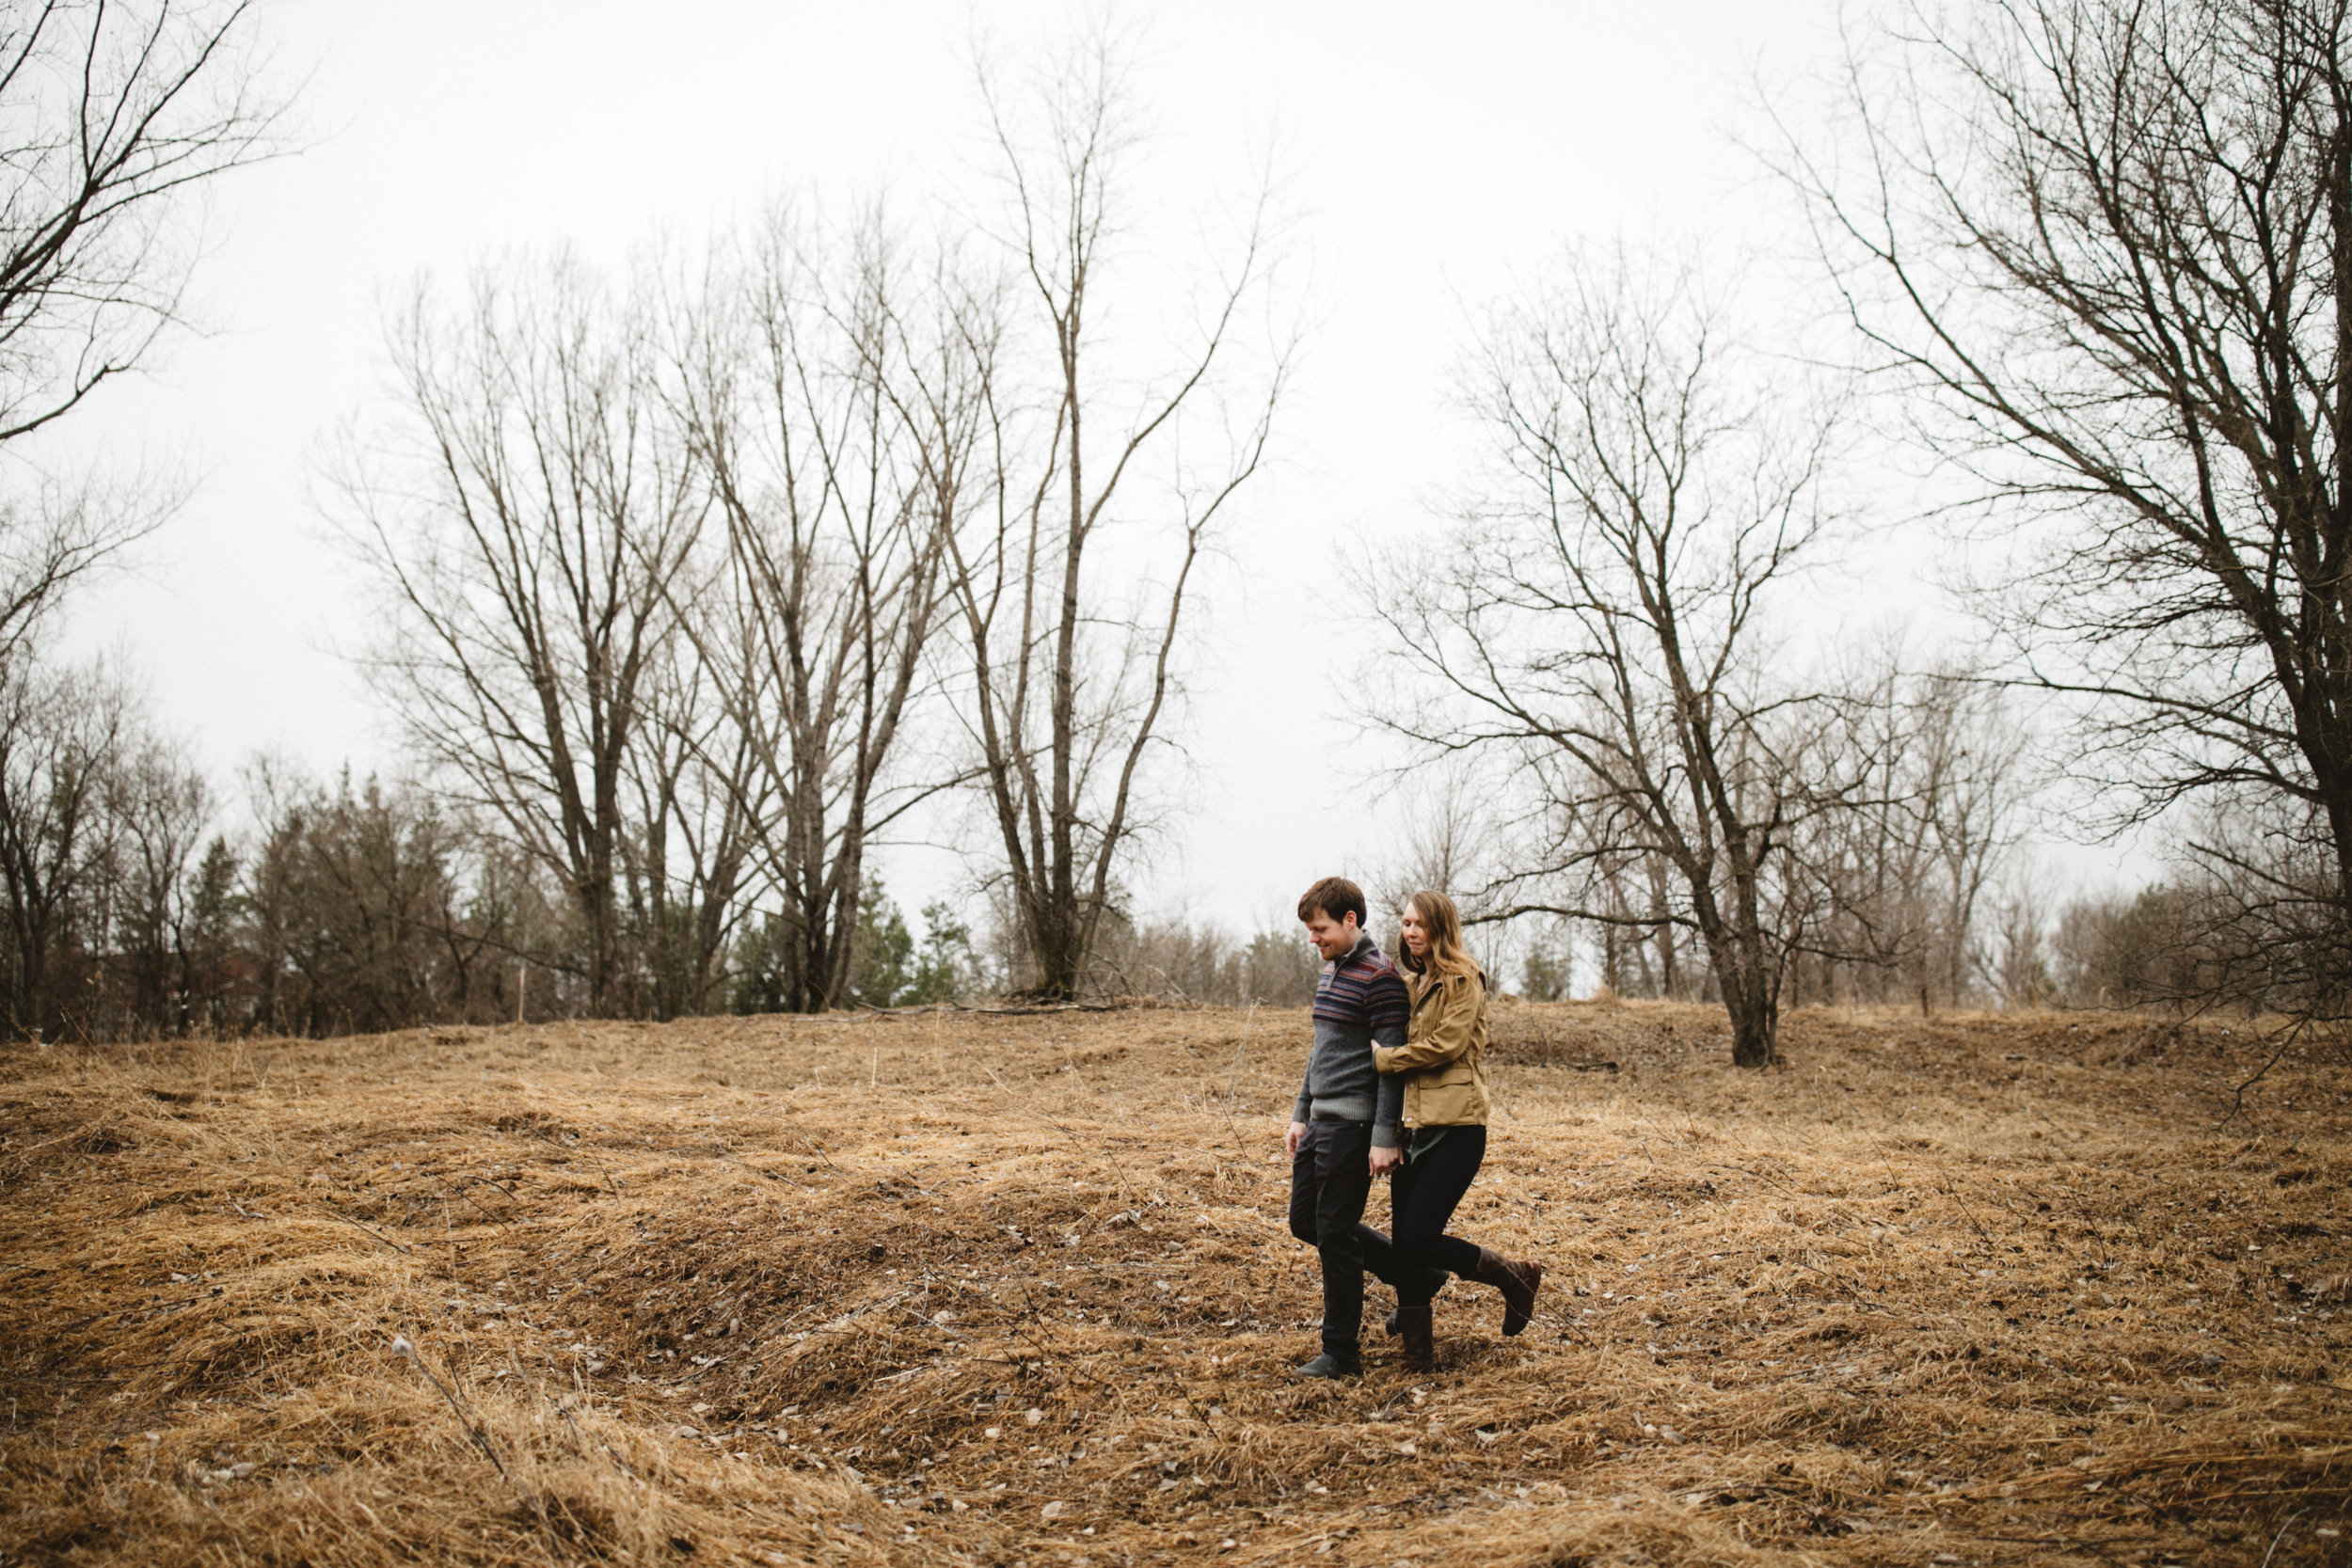 Natural and organic engagement photography at the Northland Arboretum in Brainerd Minnesota, photographed by Britt DeZeeuw